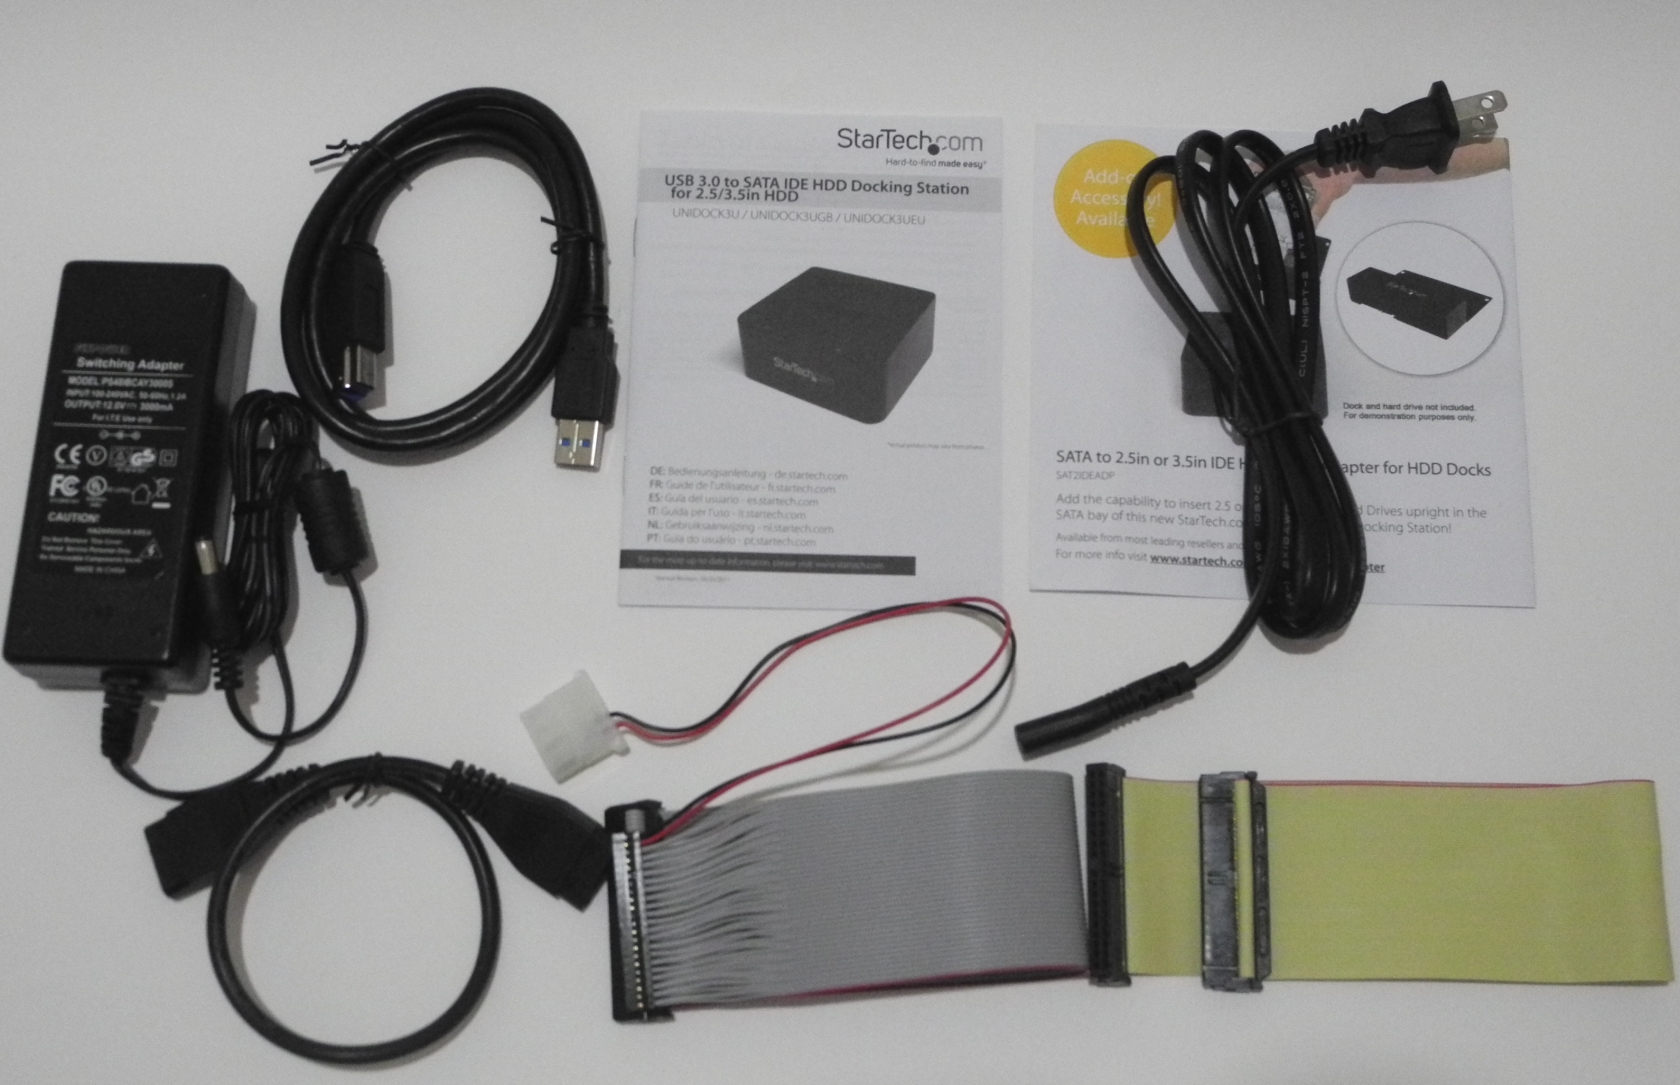 StarTech.com USB 3.0 to SATA IDE HDD Docking Station Review